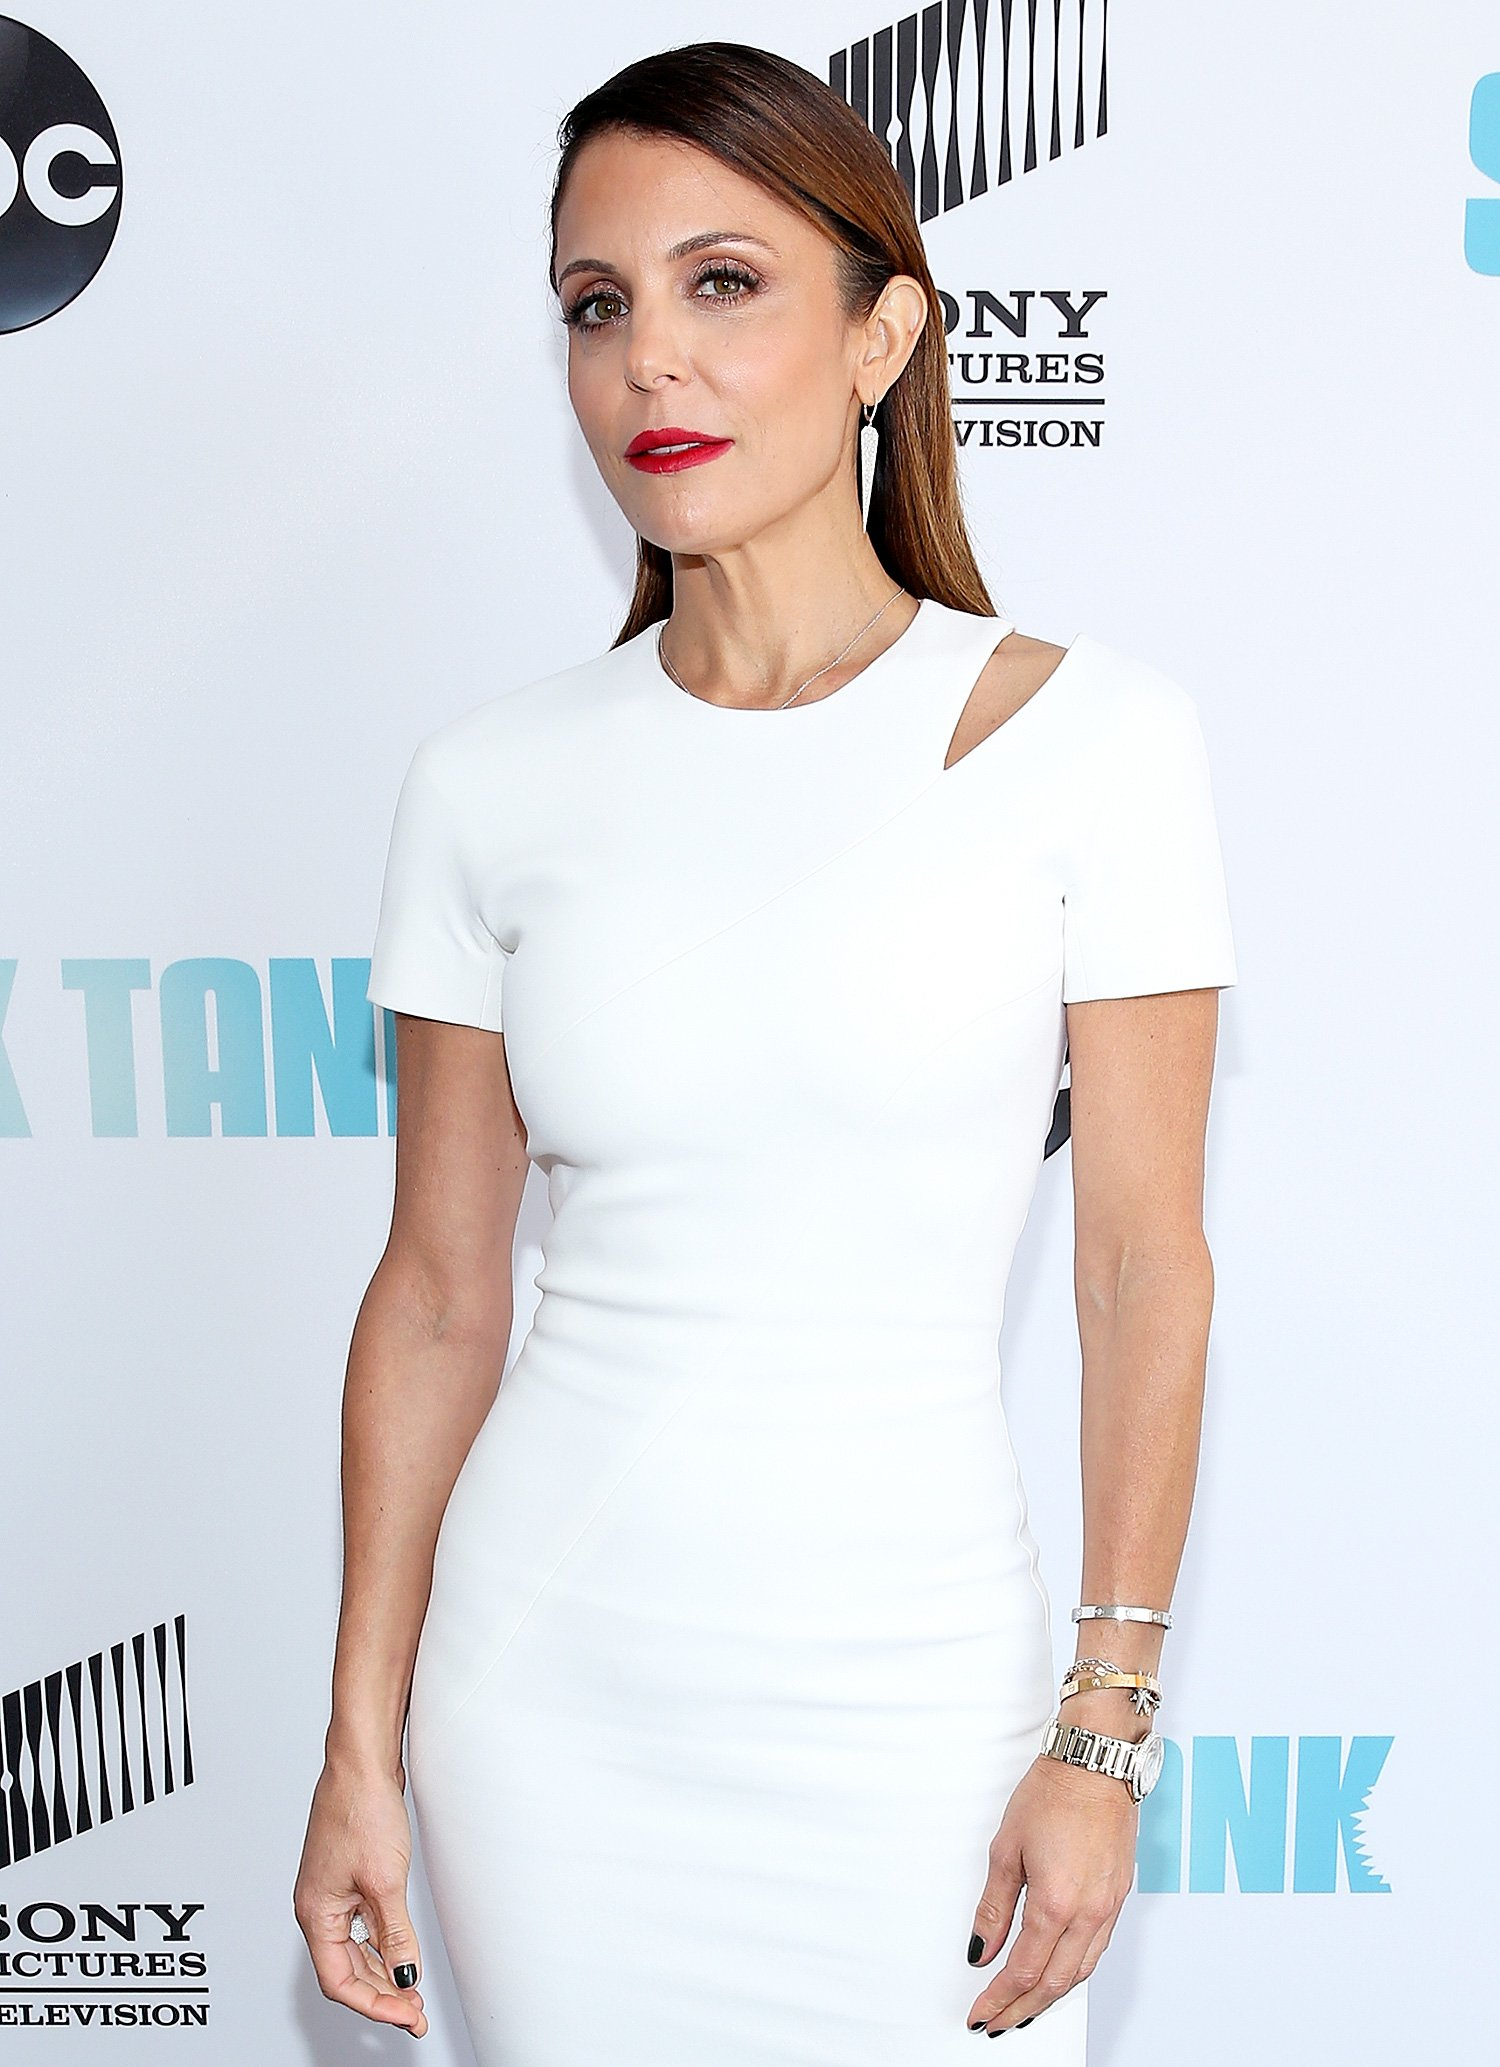 Bethenny Frankel Suffers a Near-Fatal Allergic Reaction to Fish: 'I Thought I Had a Stroke'